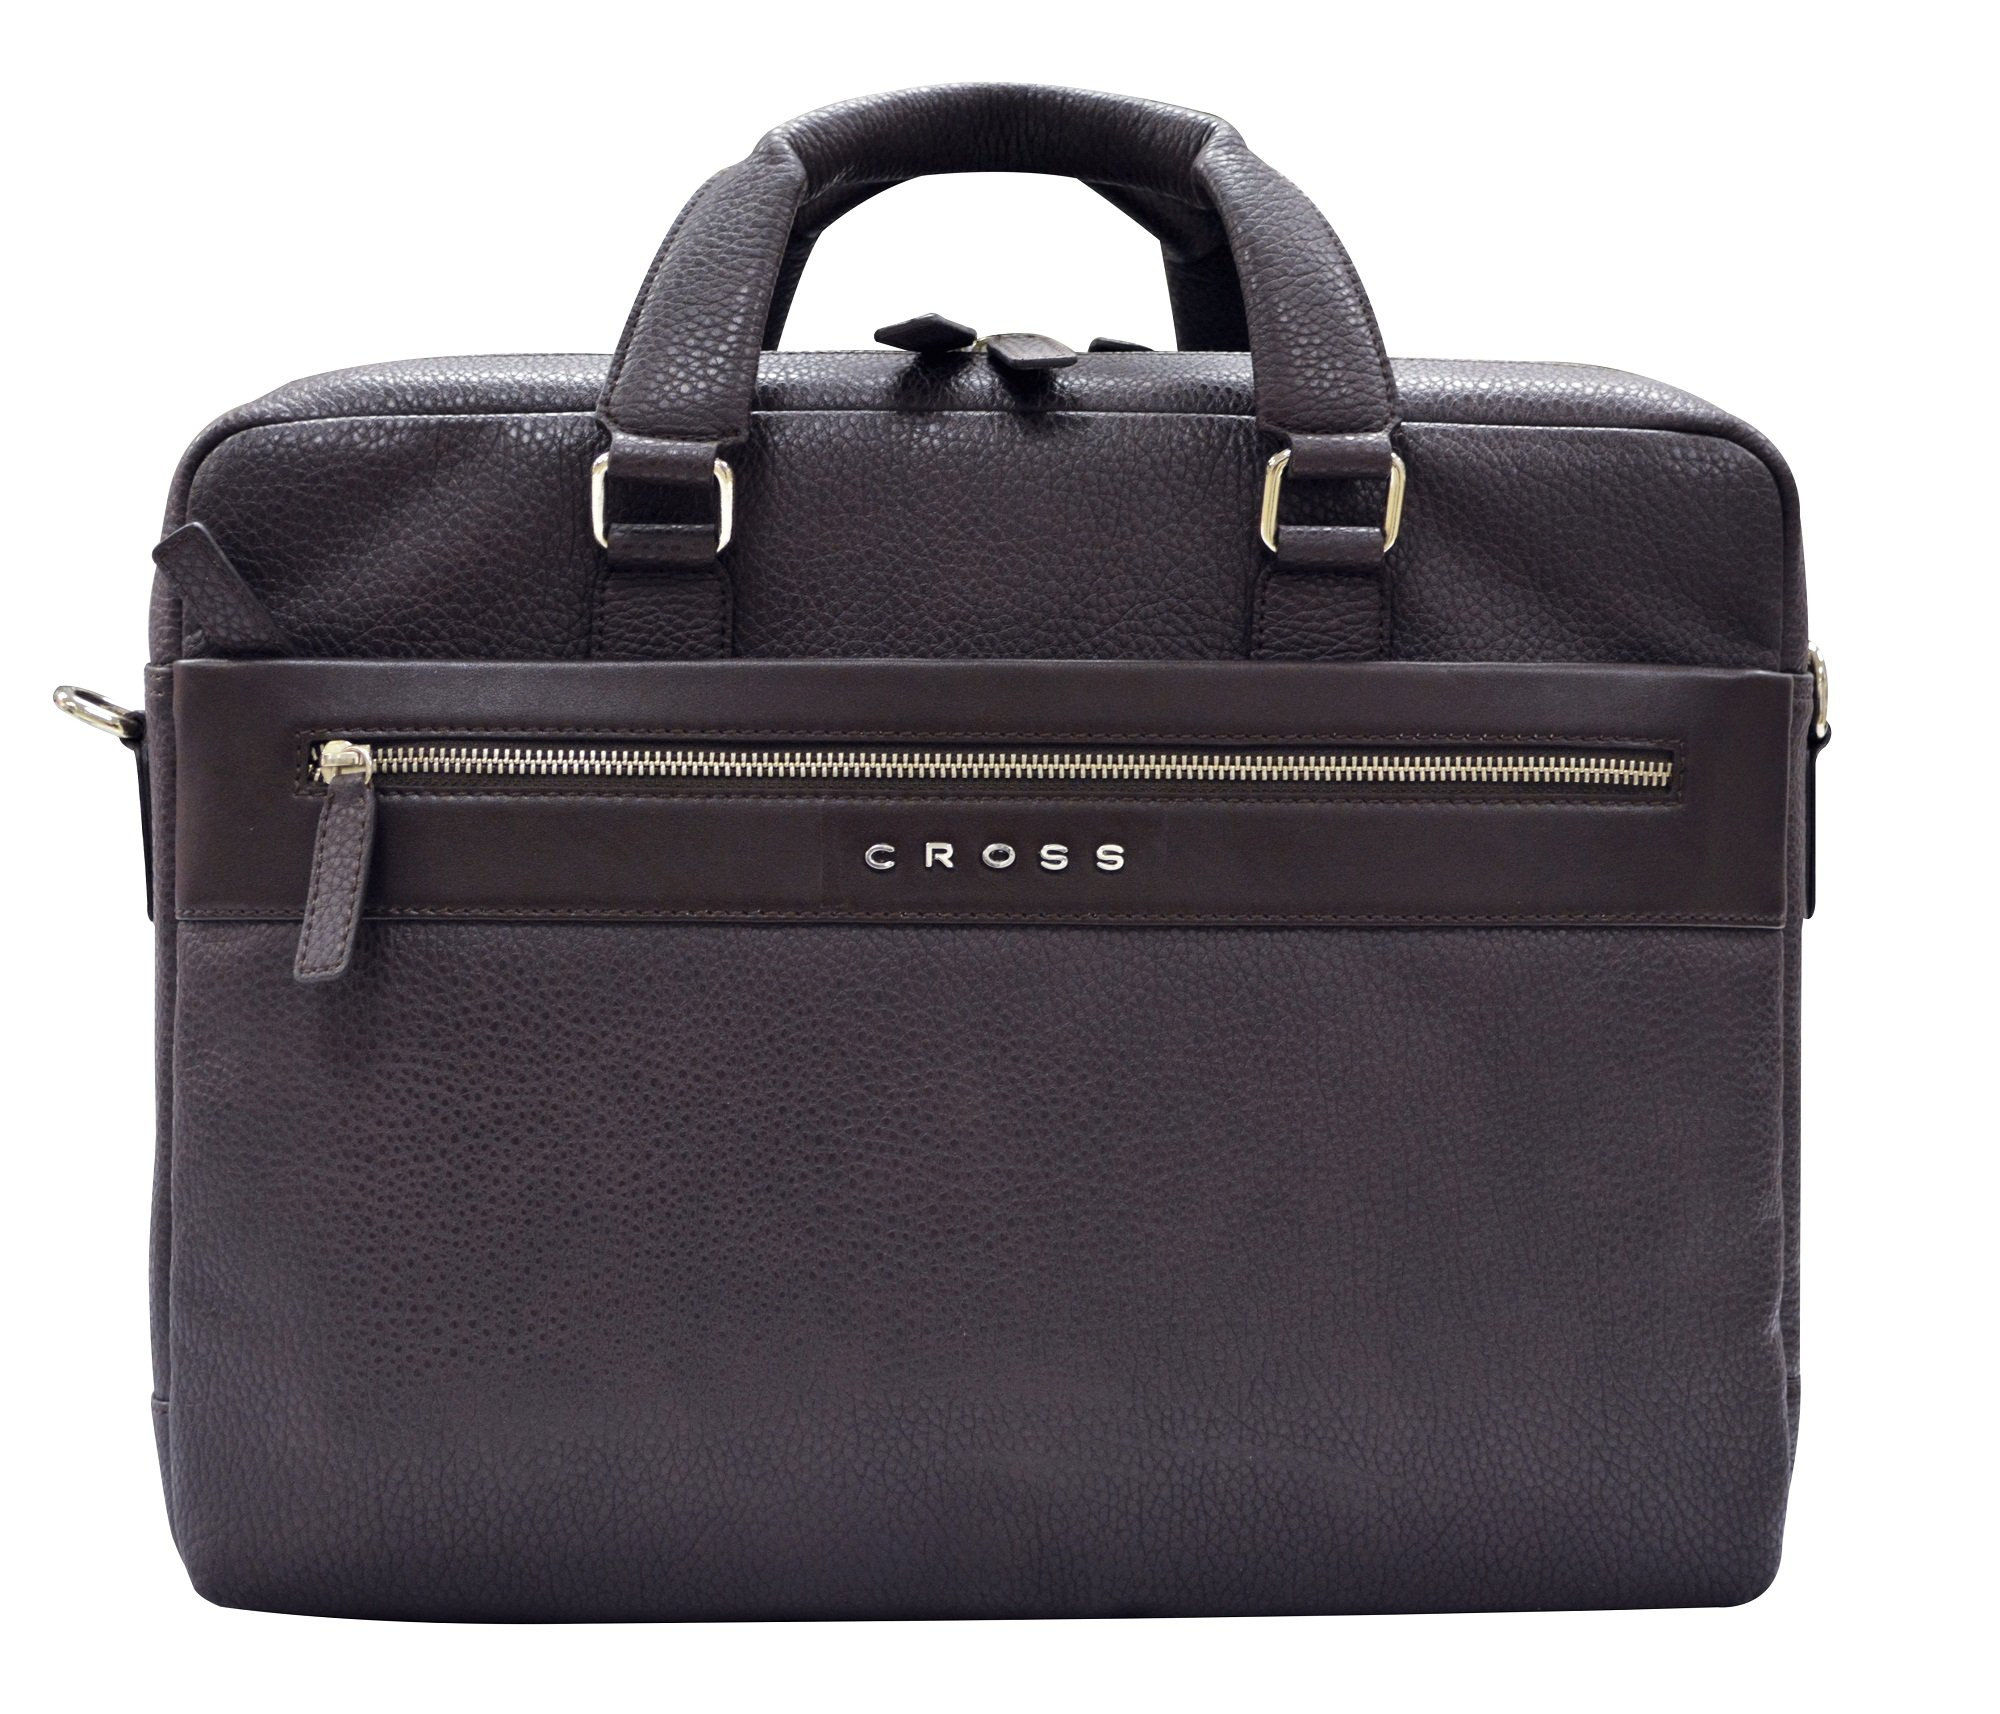 Cross Men's Nueva FV Leather Weekender Bag (Oak Brown)